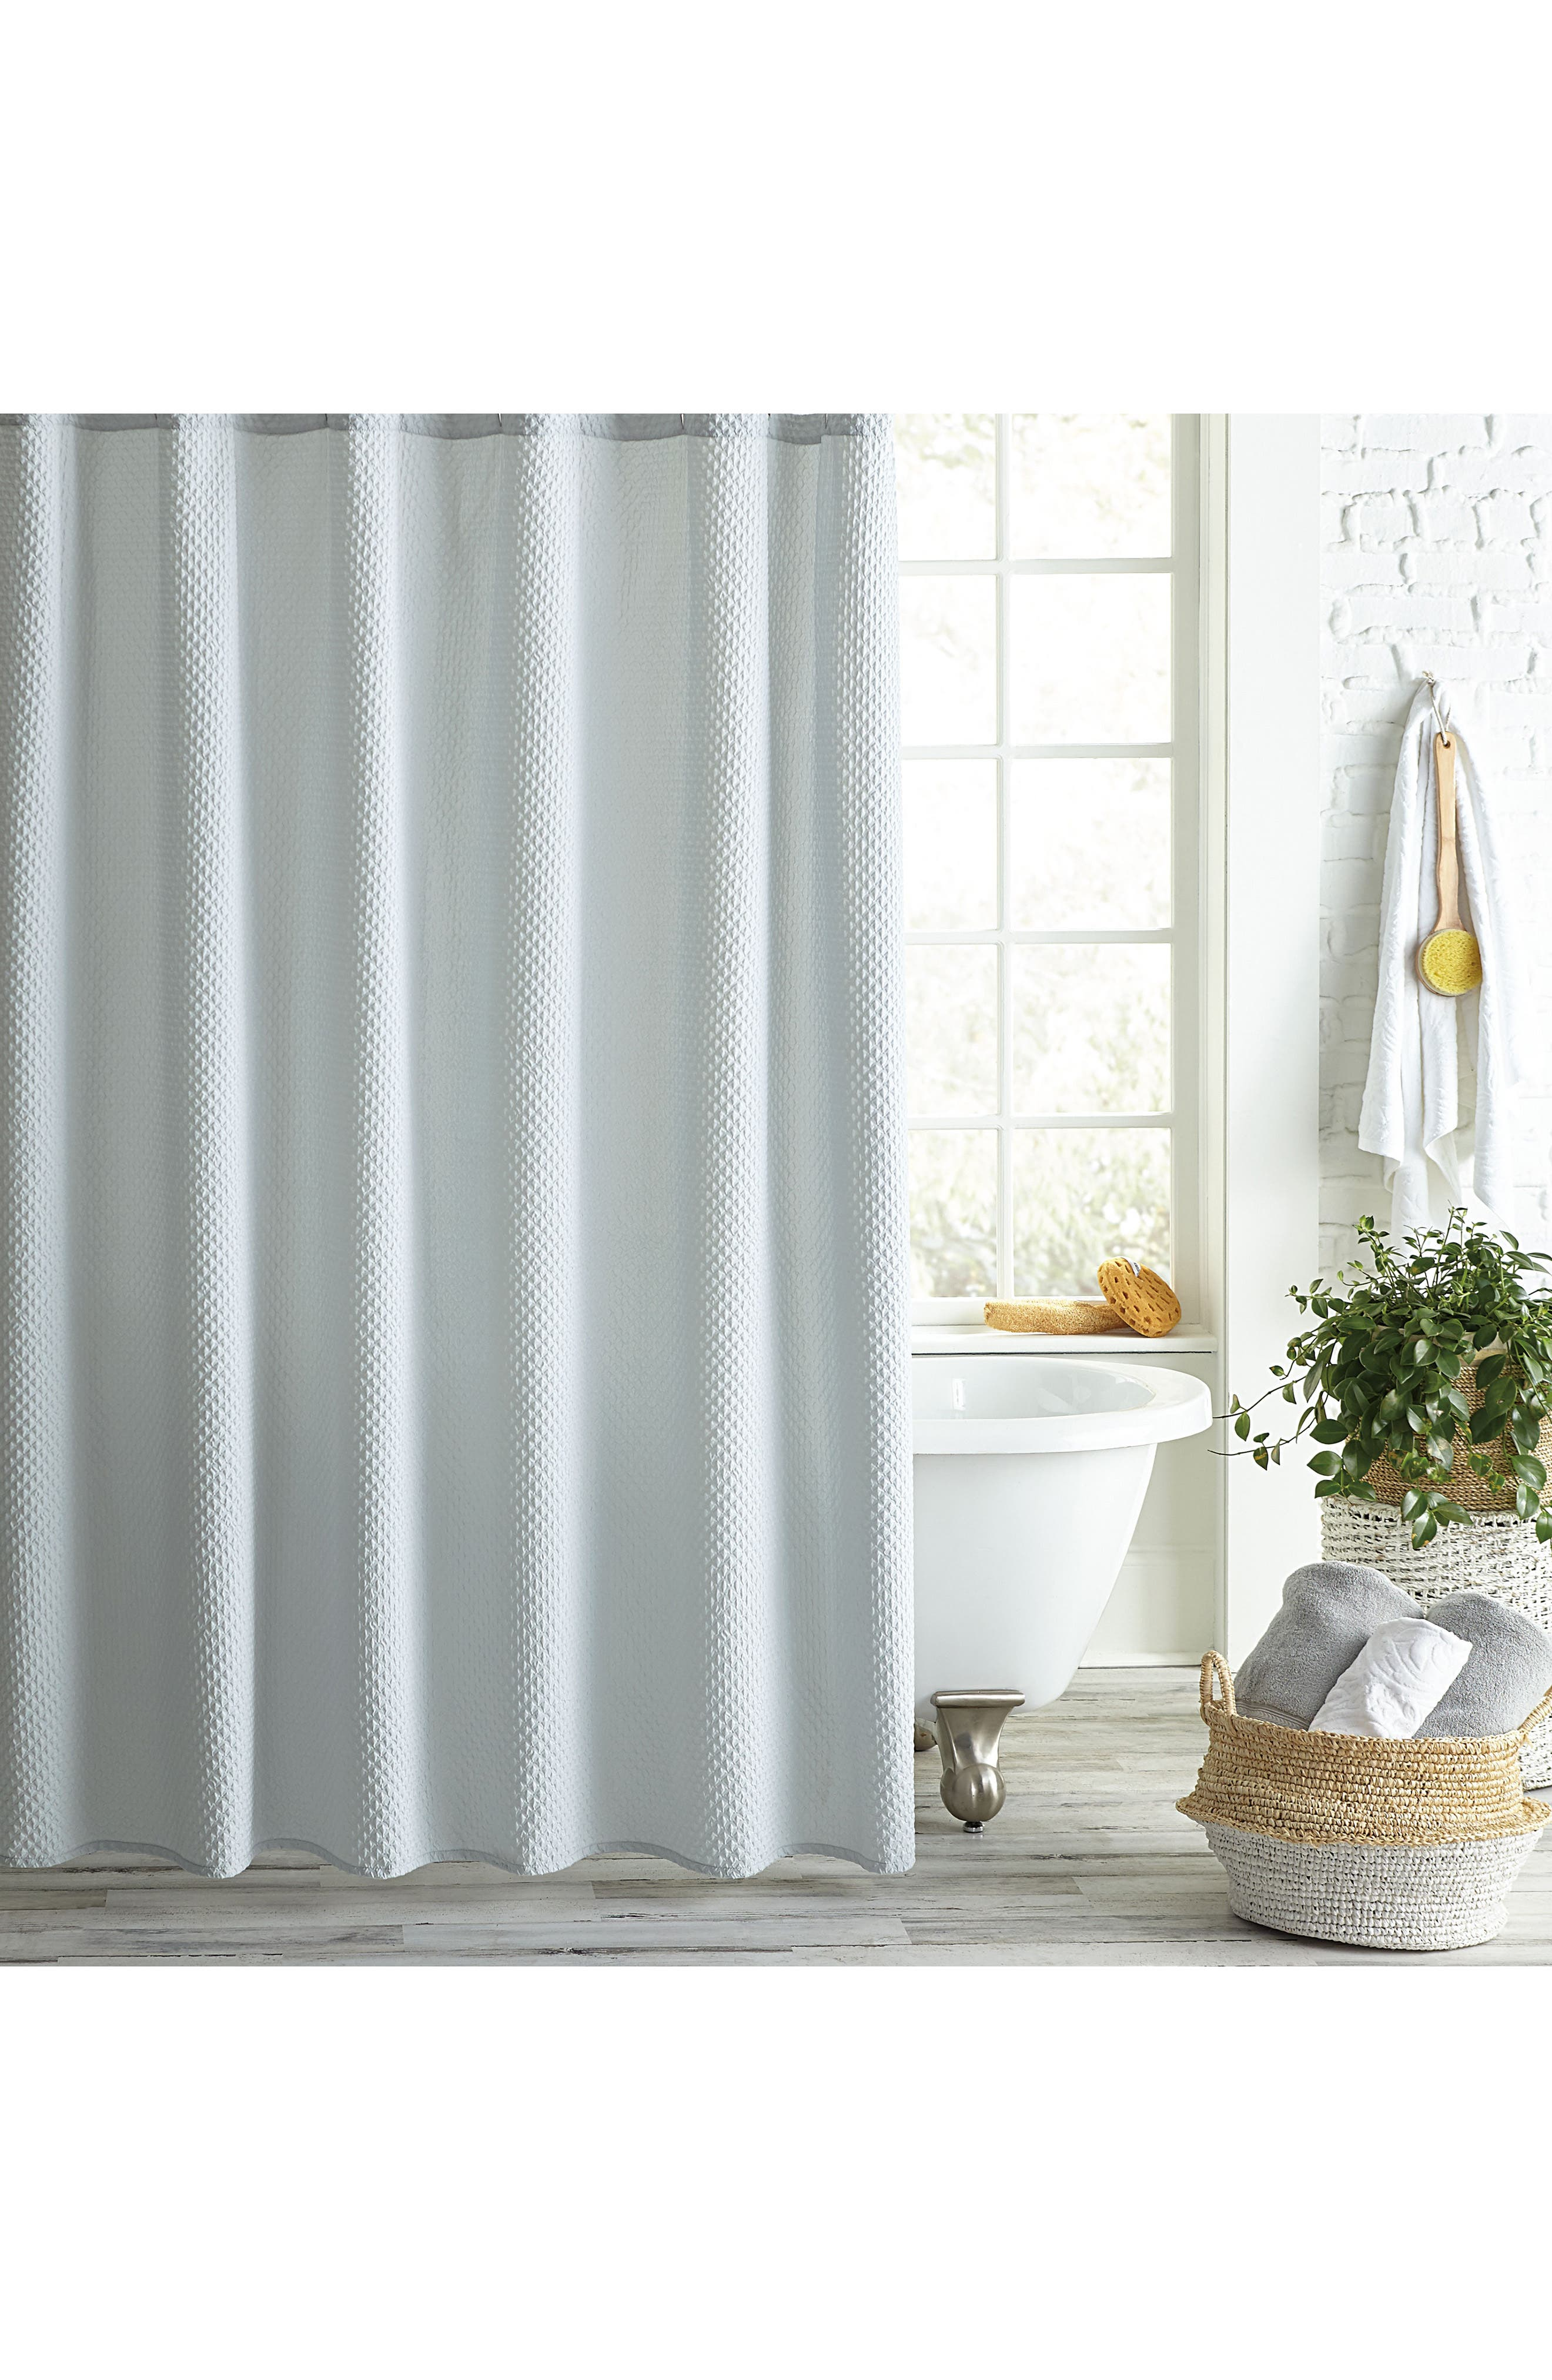 Pebble Microsculpt Shower Curtain,                             Main thumbnail 1, color,                             GREY